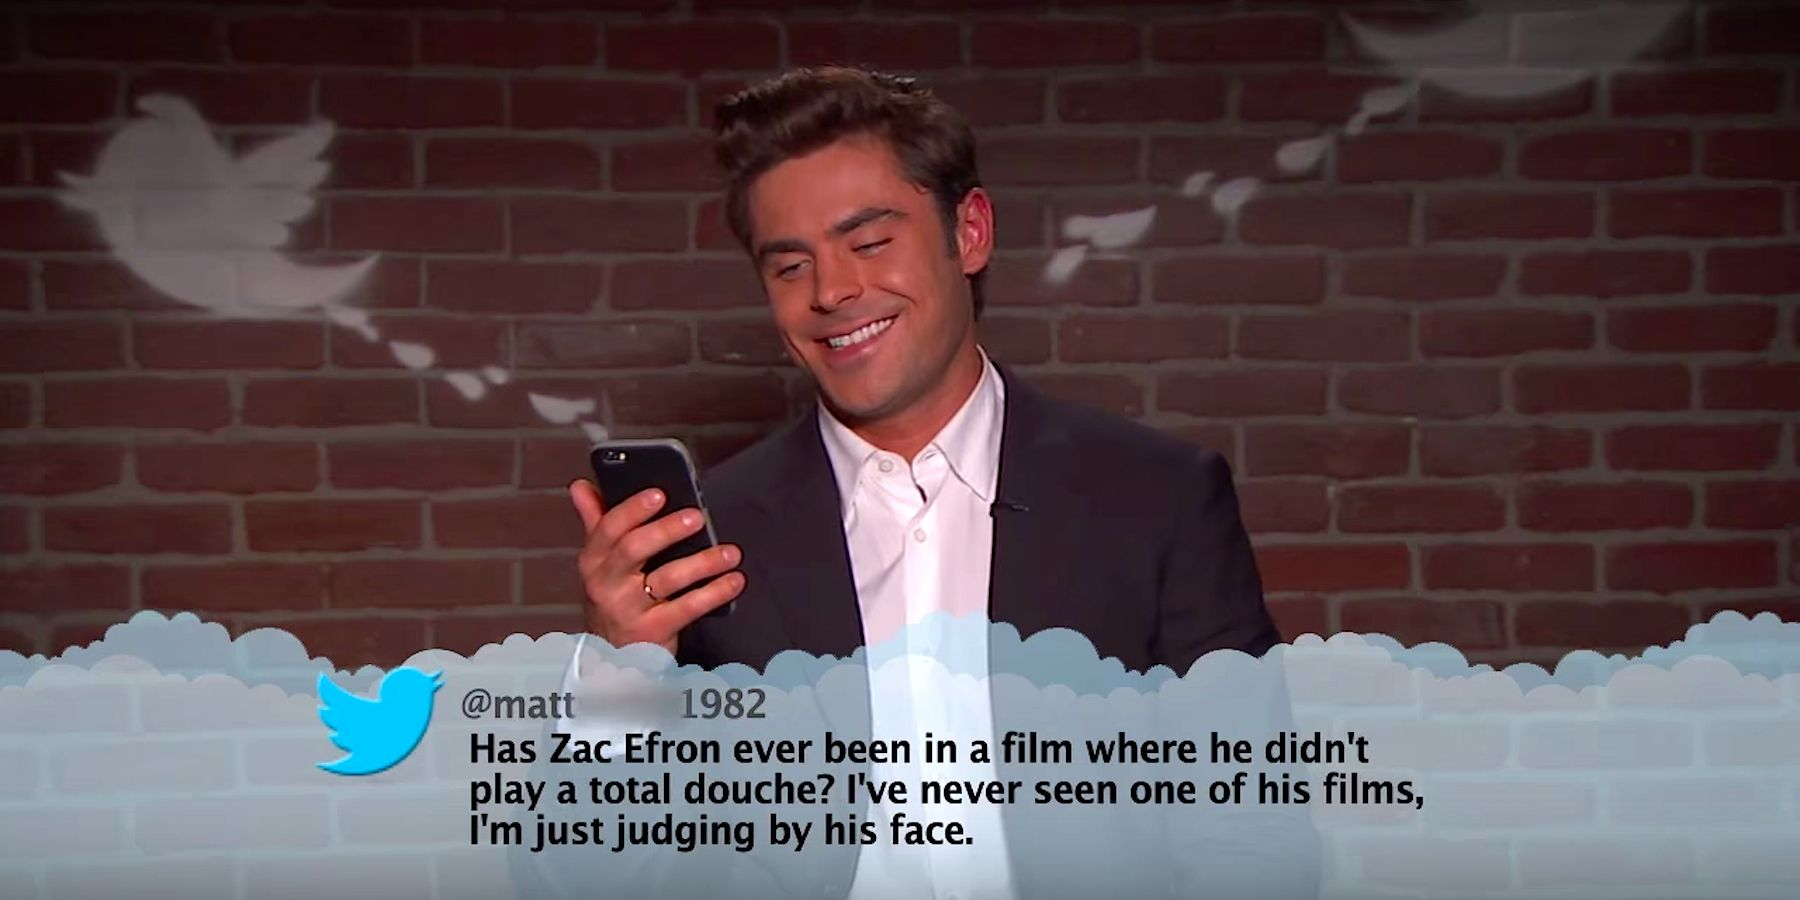 15 Hysterical Celebrity Burns From Jimmy Kimmel's 'Mean Tweets'